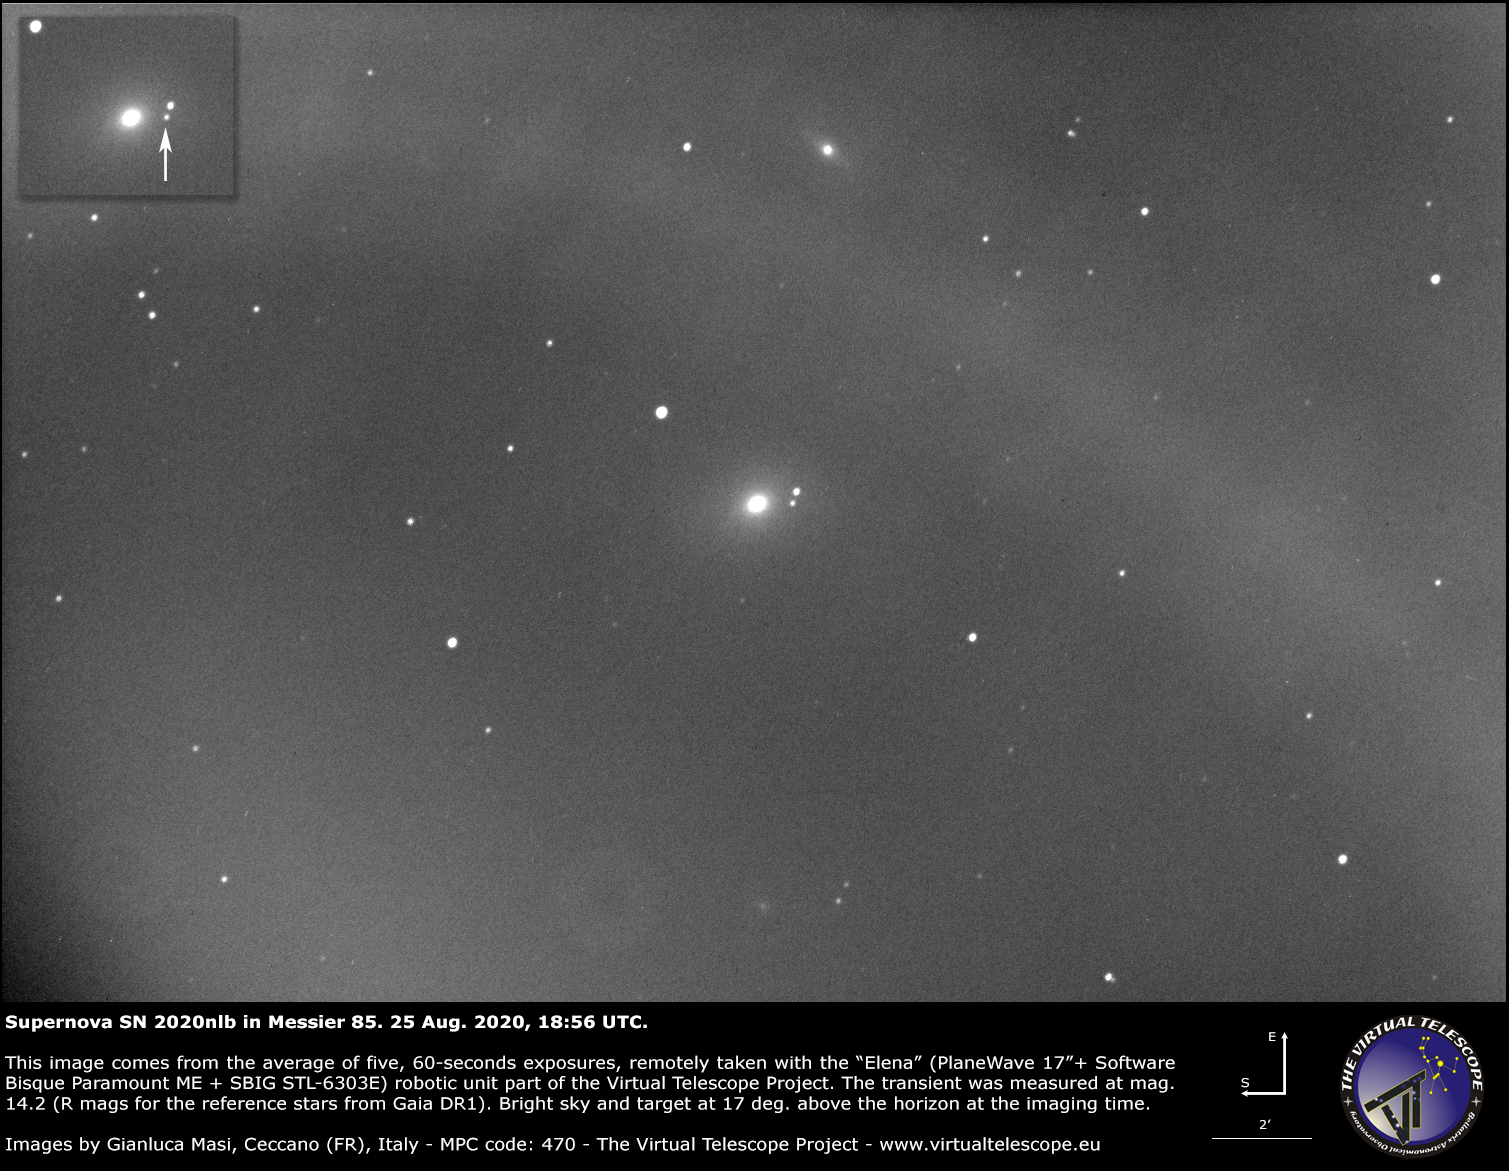 Supernova SN 2020nlb in Messier 85: an image - 25 Aug. 2020.